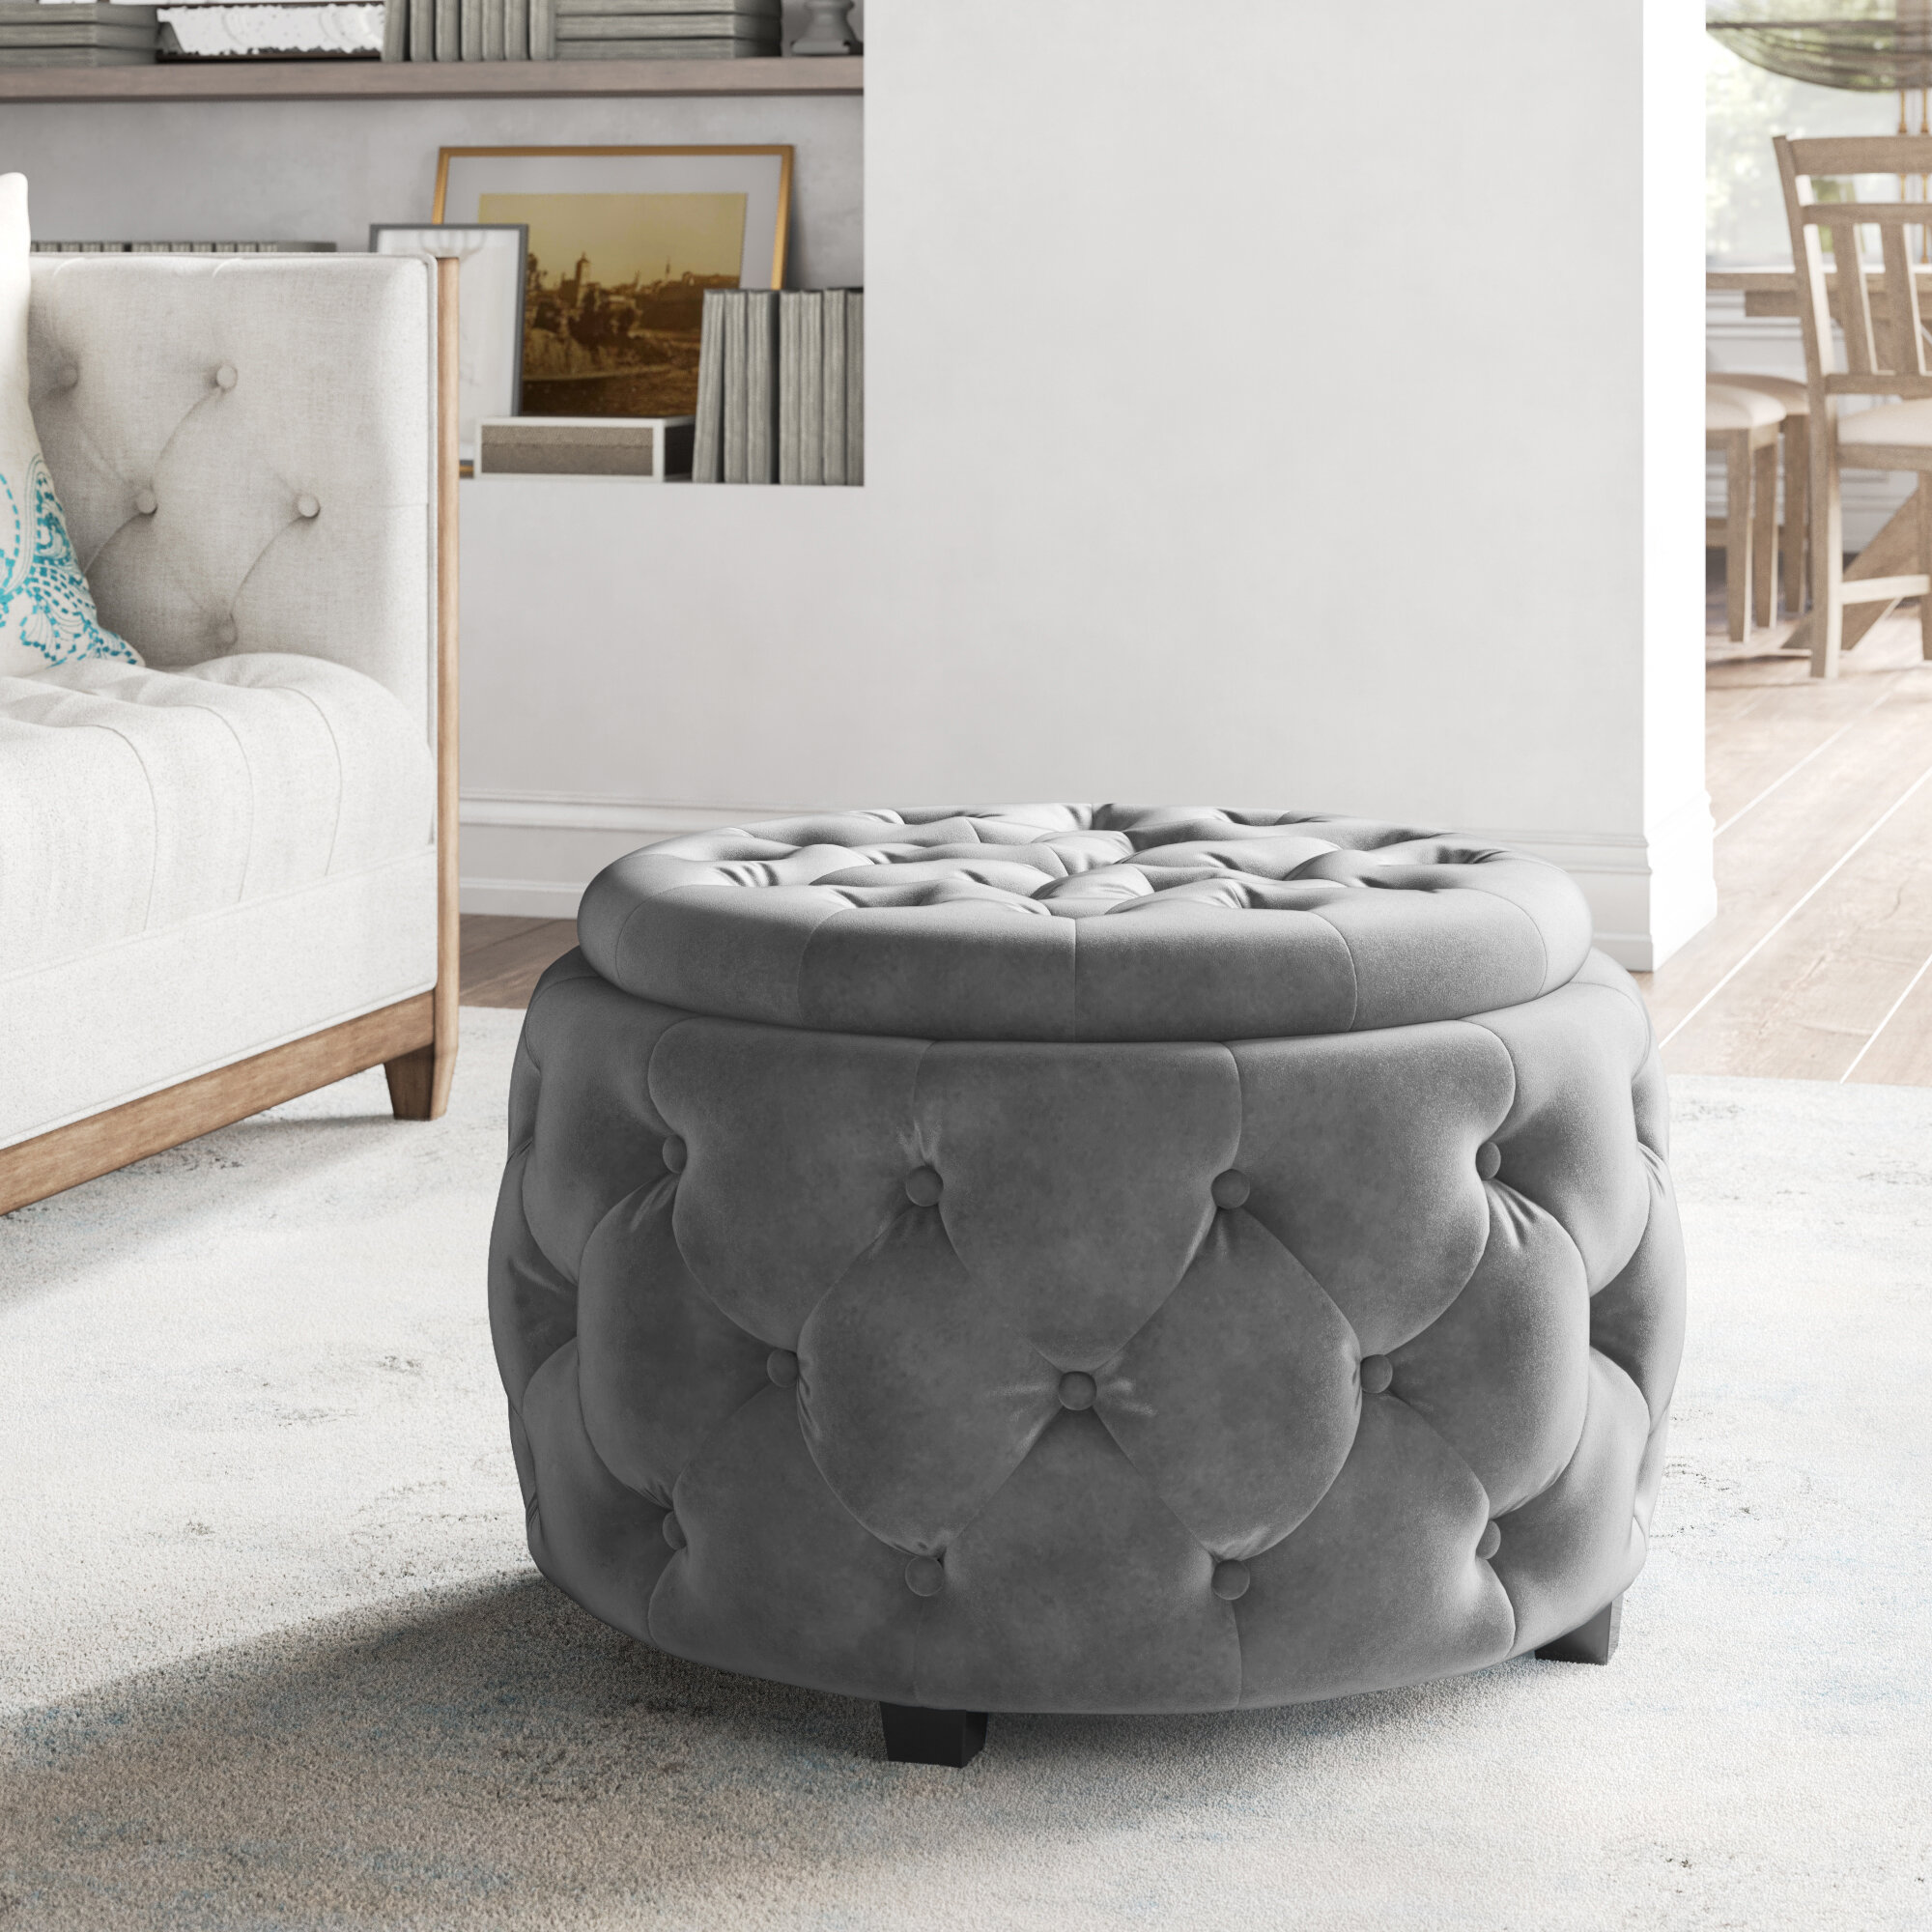 Storage Ottomans Up To 60 Off Through 02 16 Wayfair